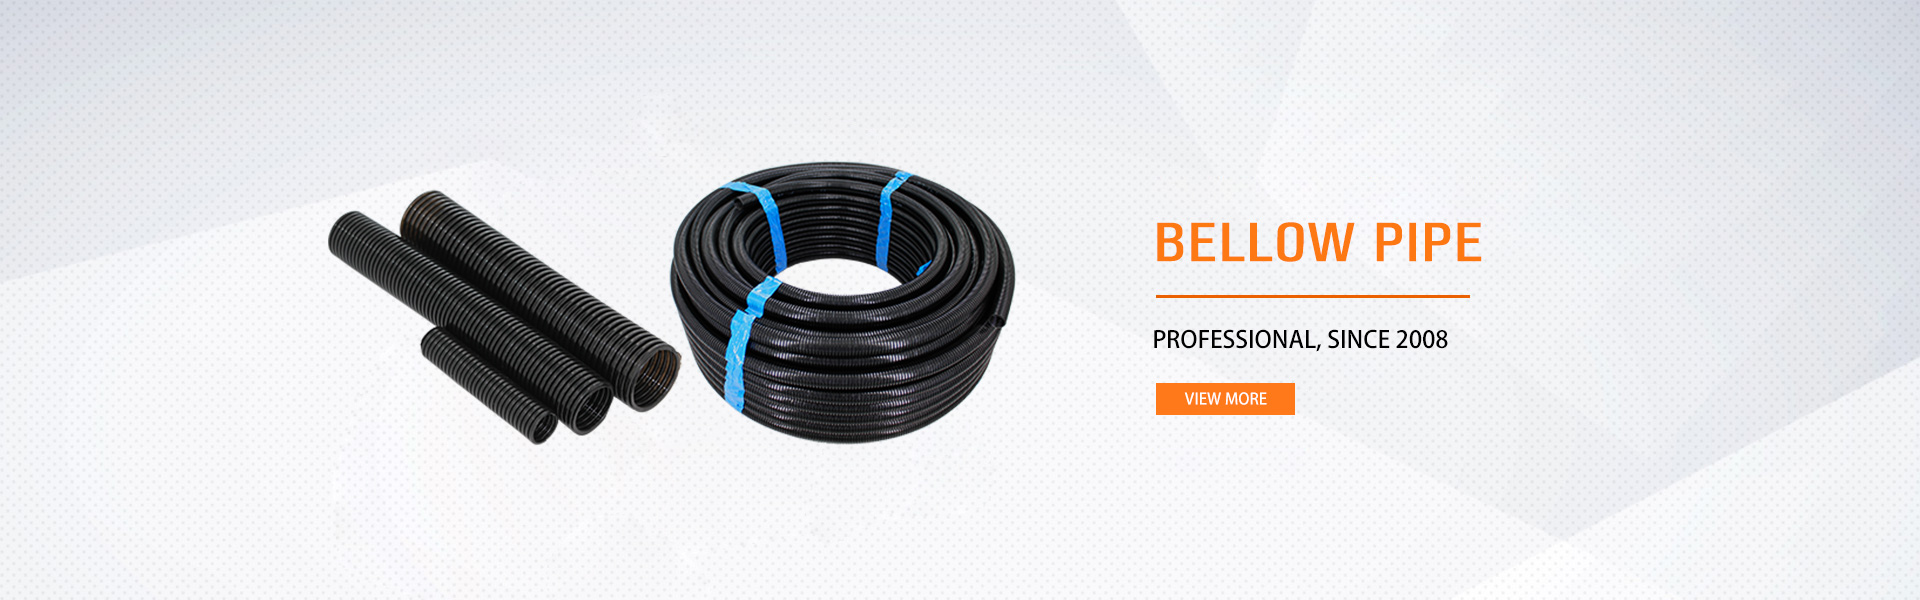 Bellow-pipe